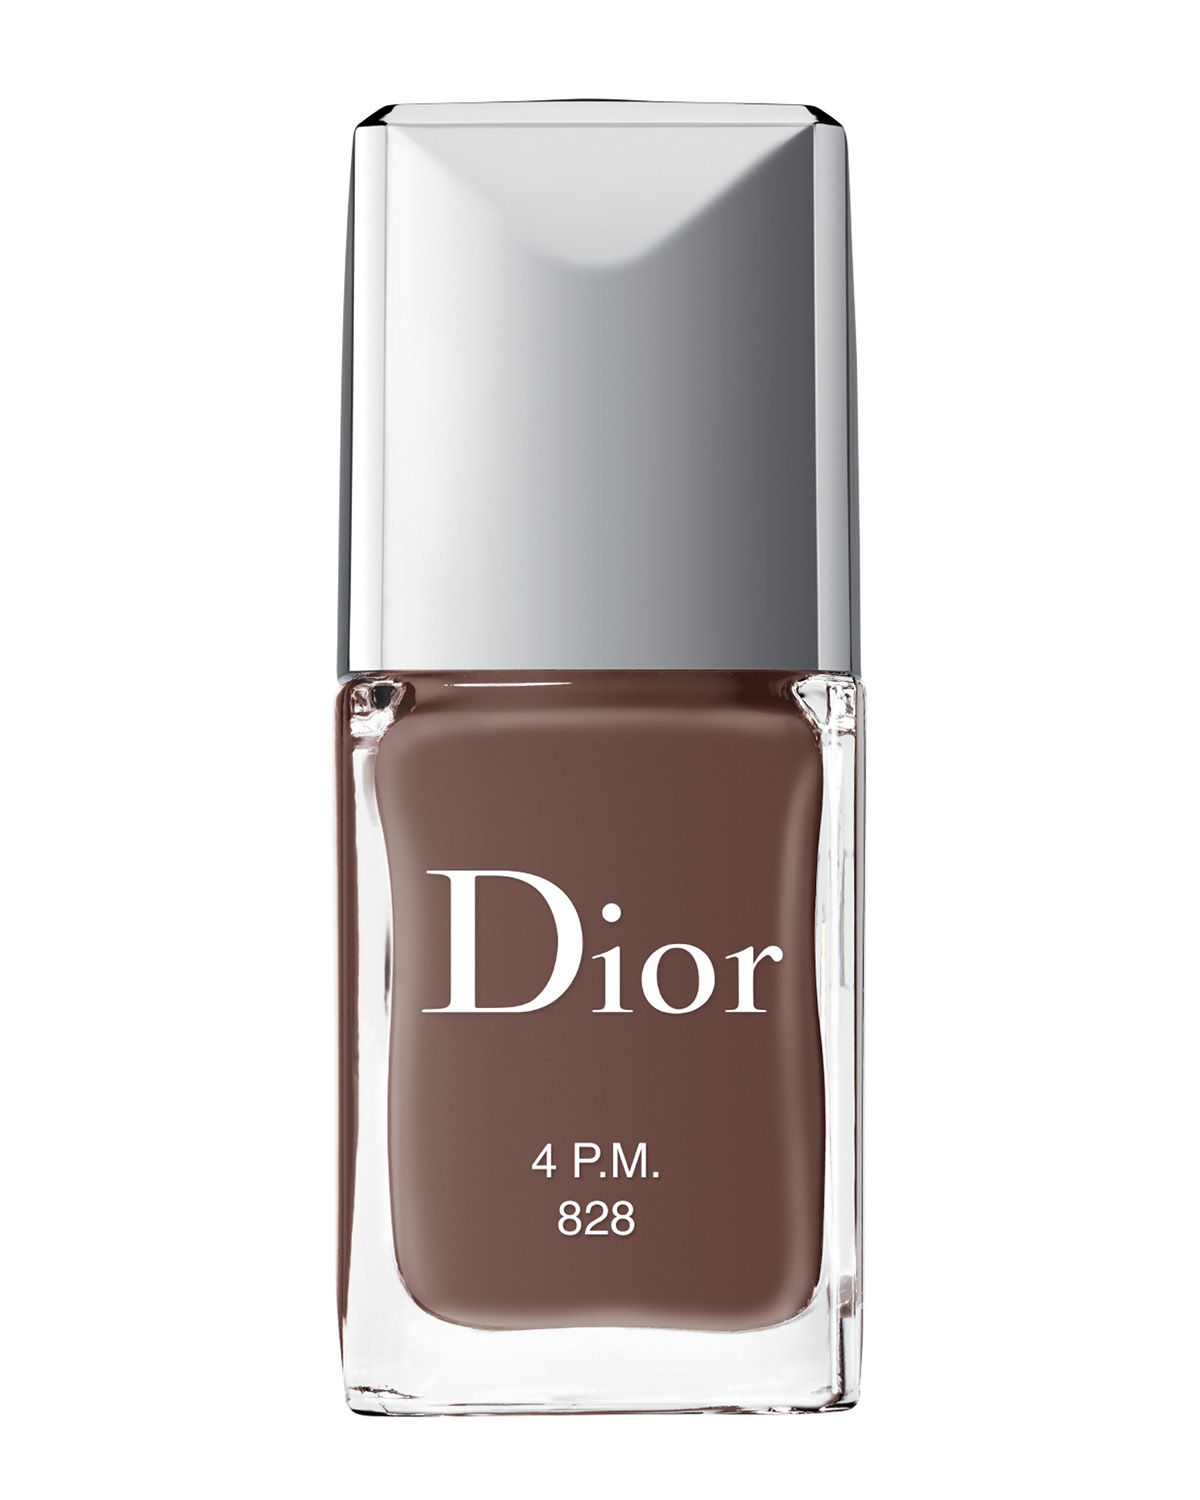 64546eecff Dior Vernis - Limited Edition Fall Look In 828 4Pm | ModeSens